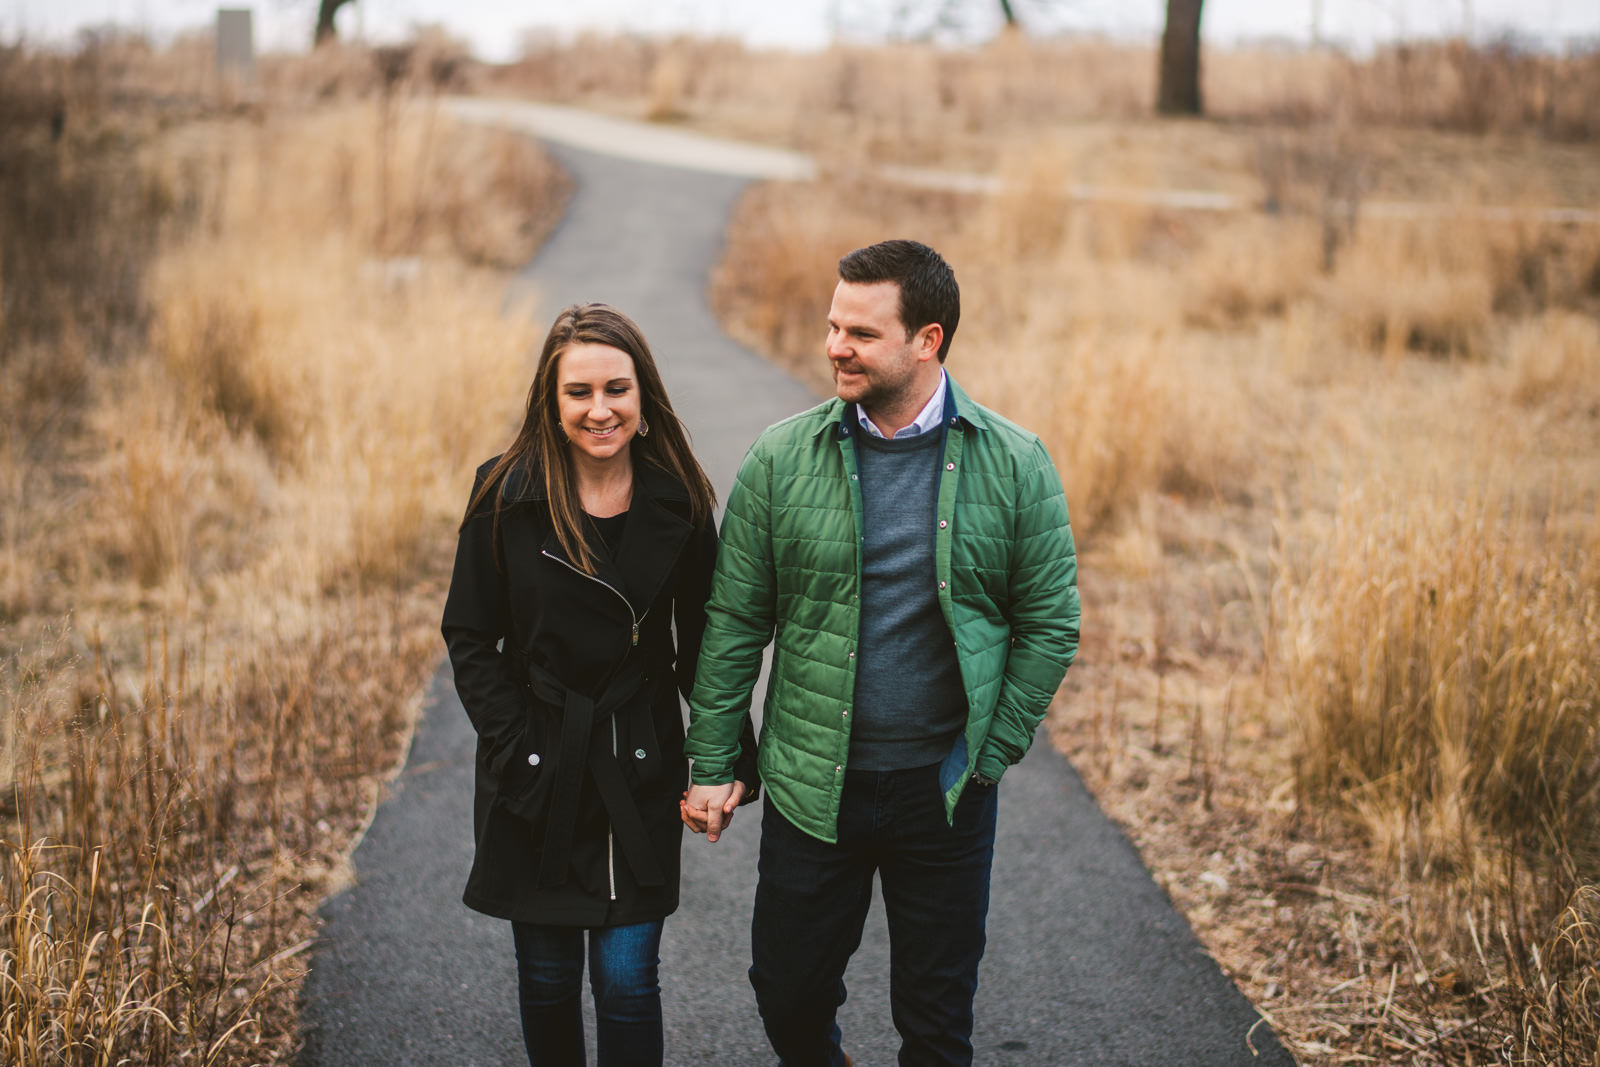 04 lincoln park engagement session - West Loop Chicago Engagement Session // Courtney + Tim